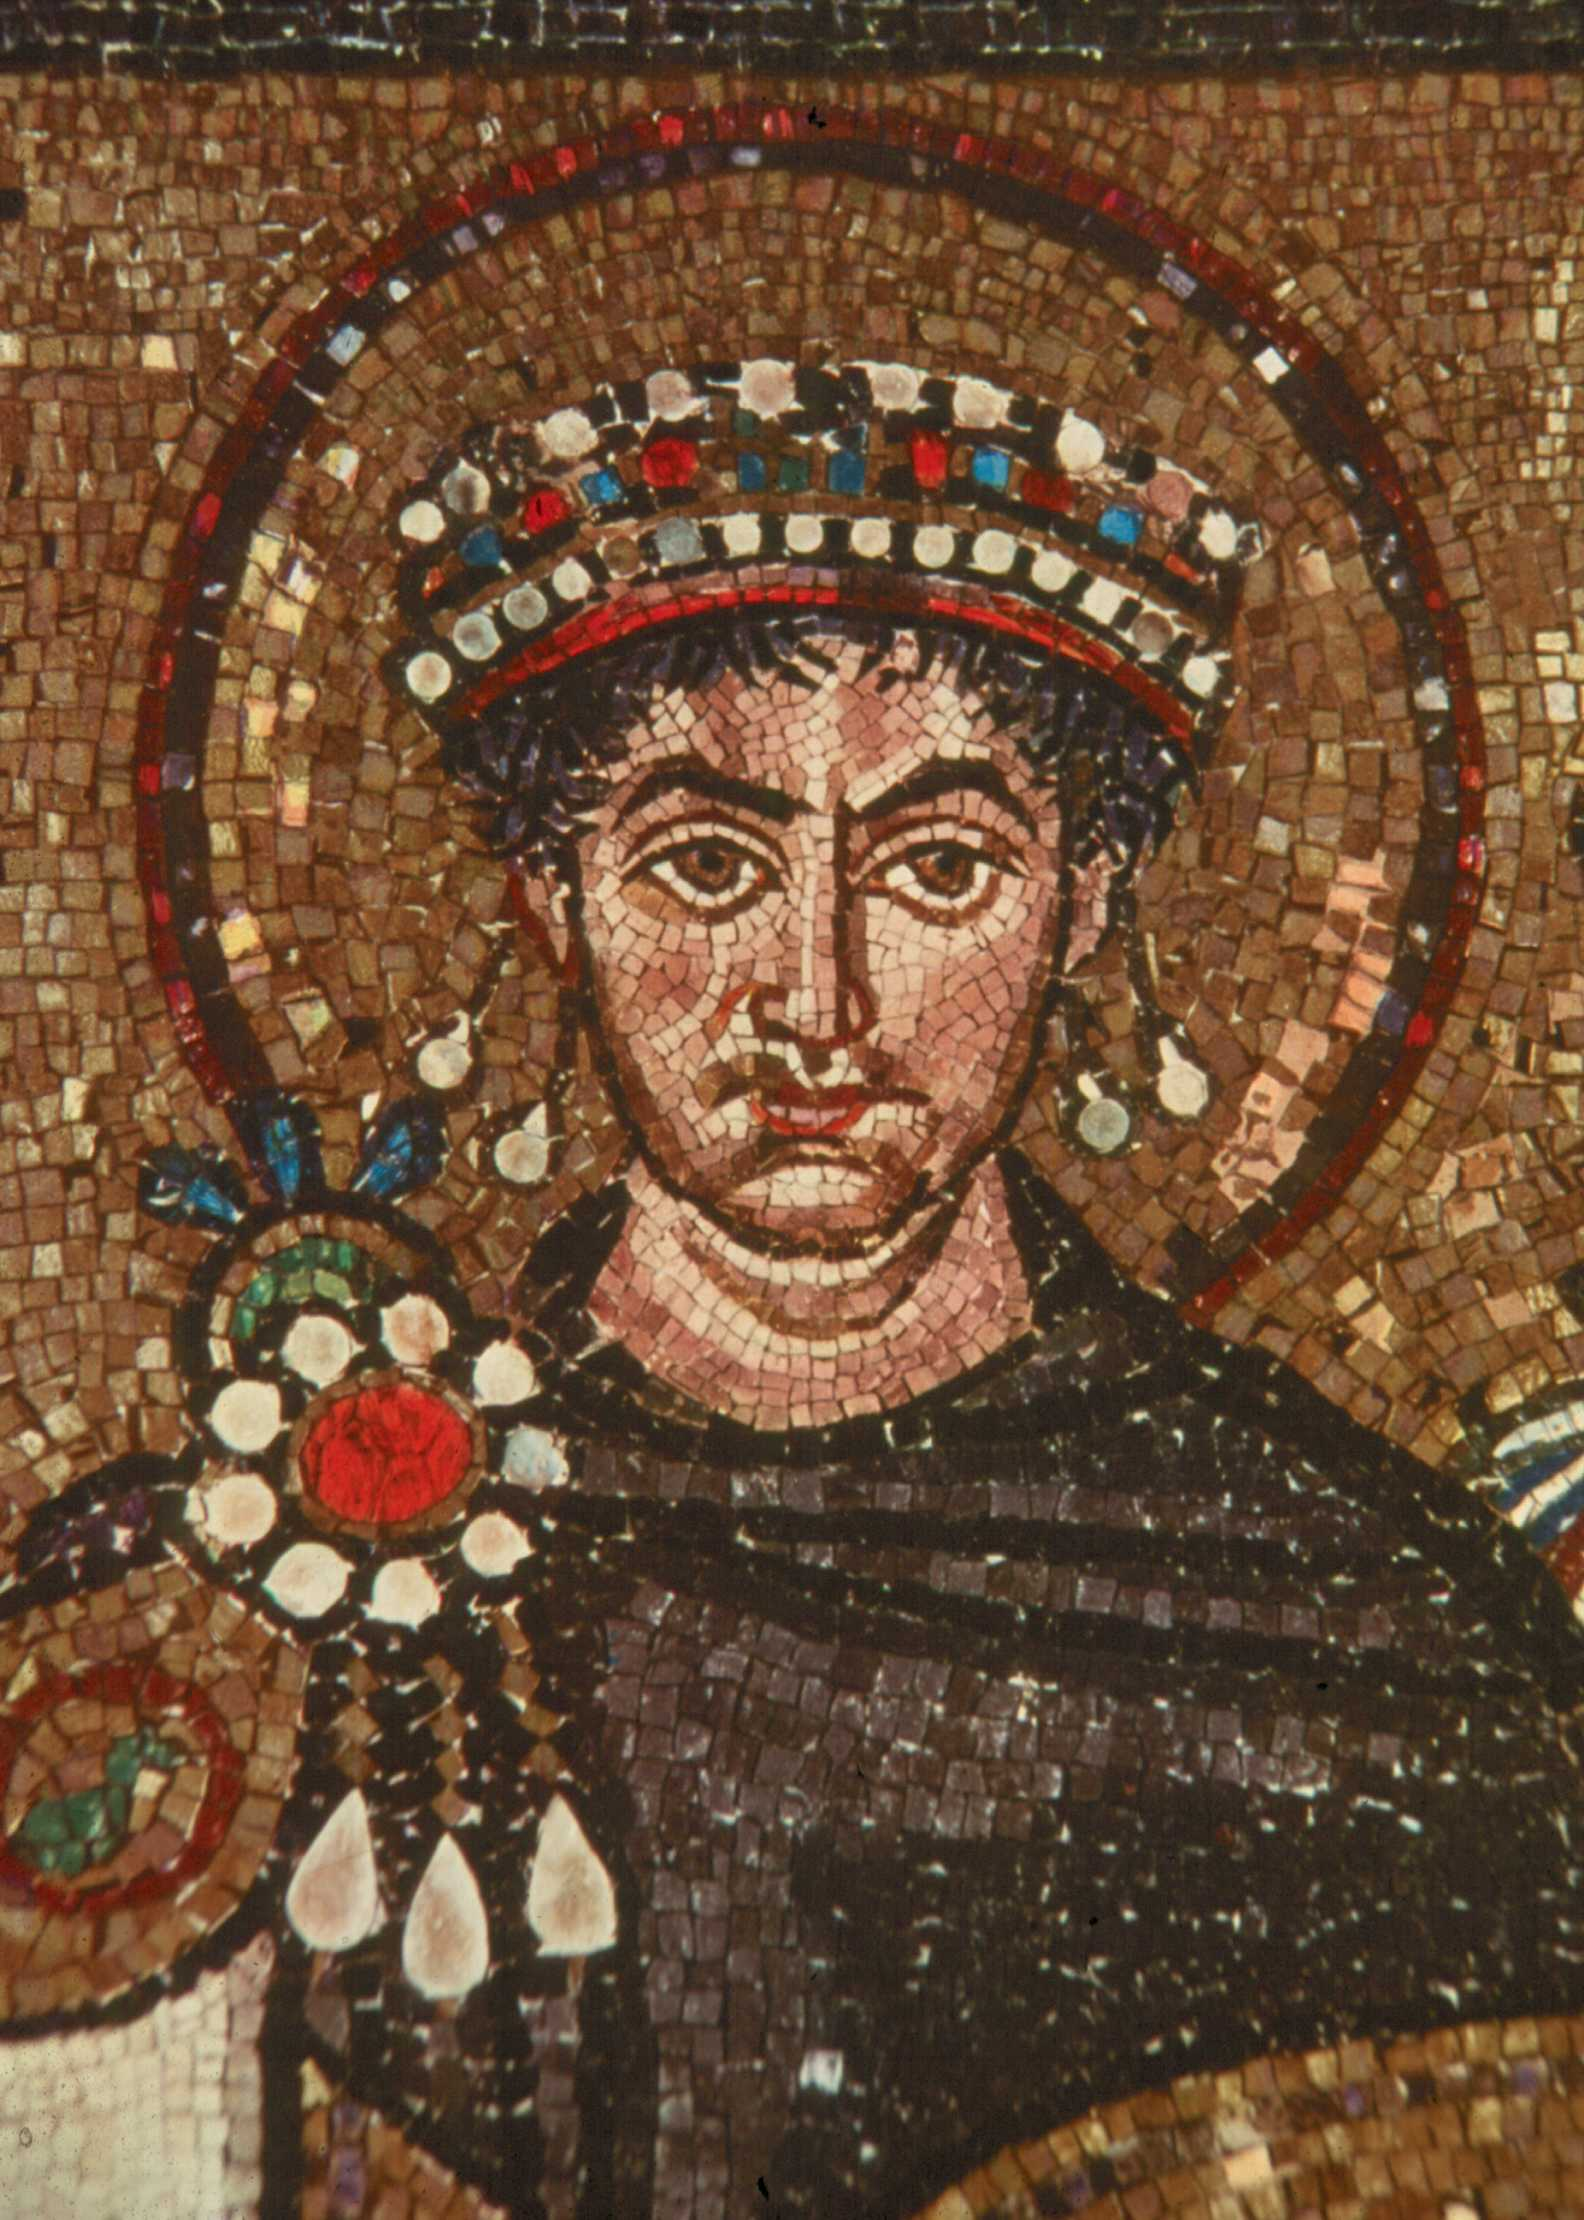 pictorial essays on the byzantine empire Essays related to byzantine empire 1 byzantine empire byzantine is the name given to both the state and the culture of the eastern roman empire in the middle ages.